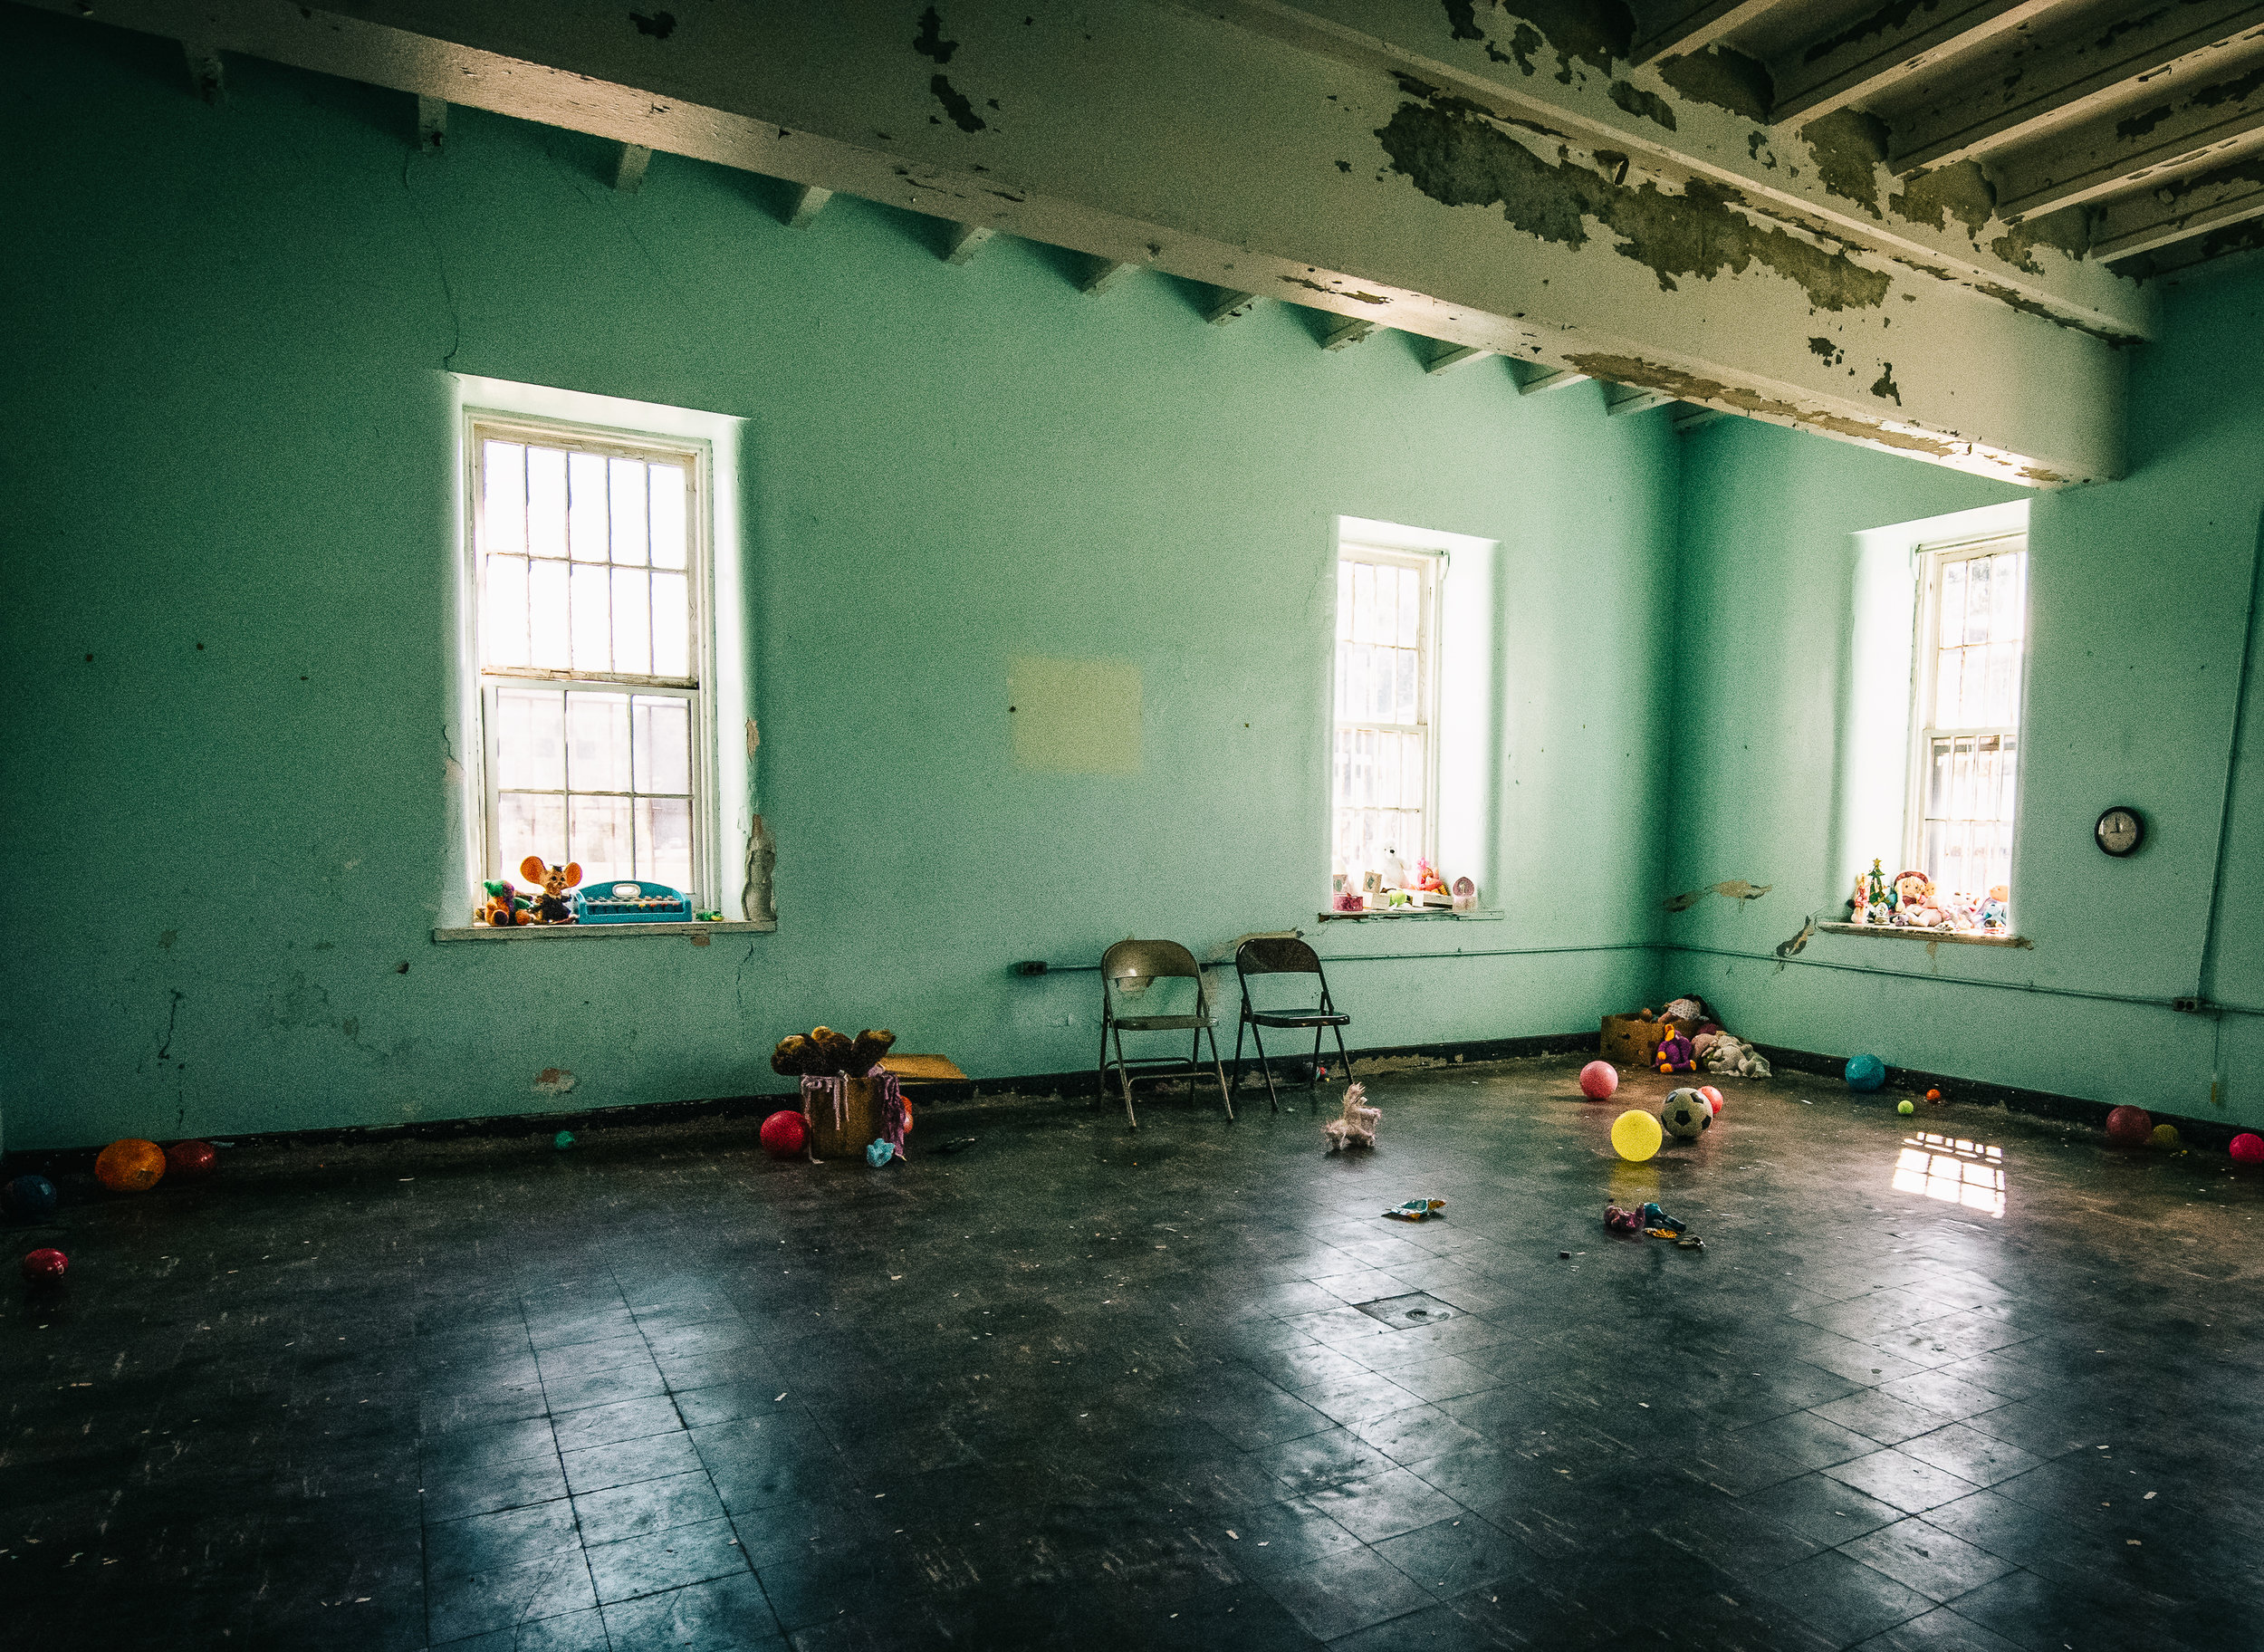 The children's ward is a common place for ghosthunters to congregate.